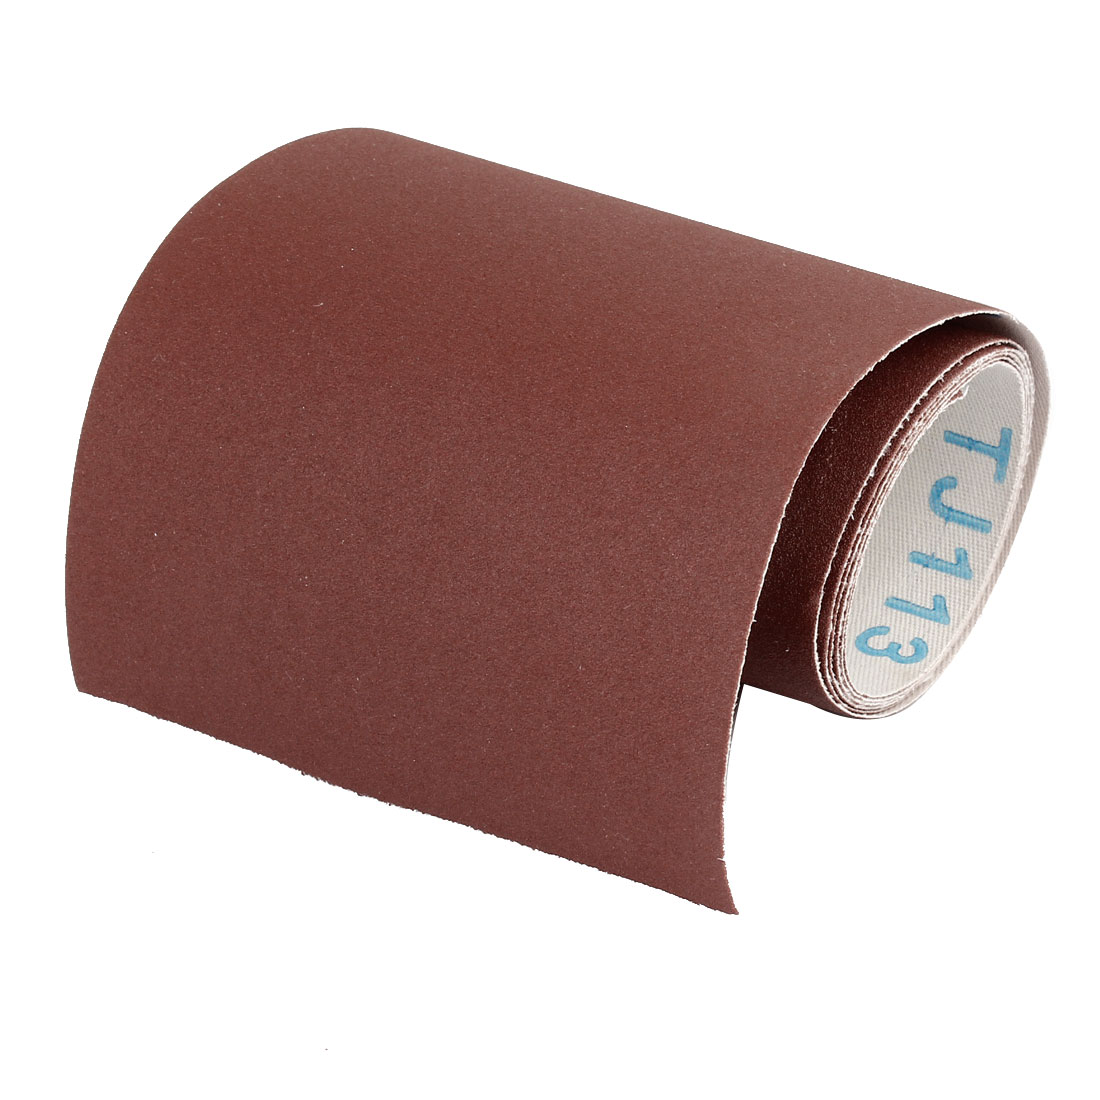 100cm Length Dark Brown Nylon Abrasive 240 Grit Sanding Belt Sandpaper Sand Sheet